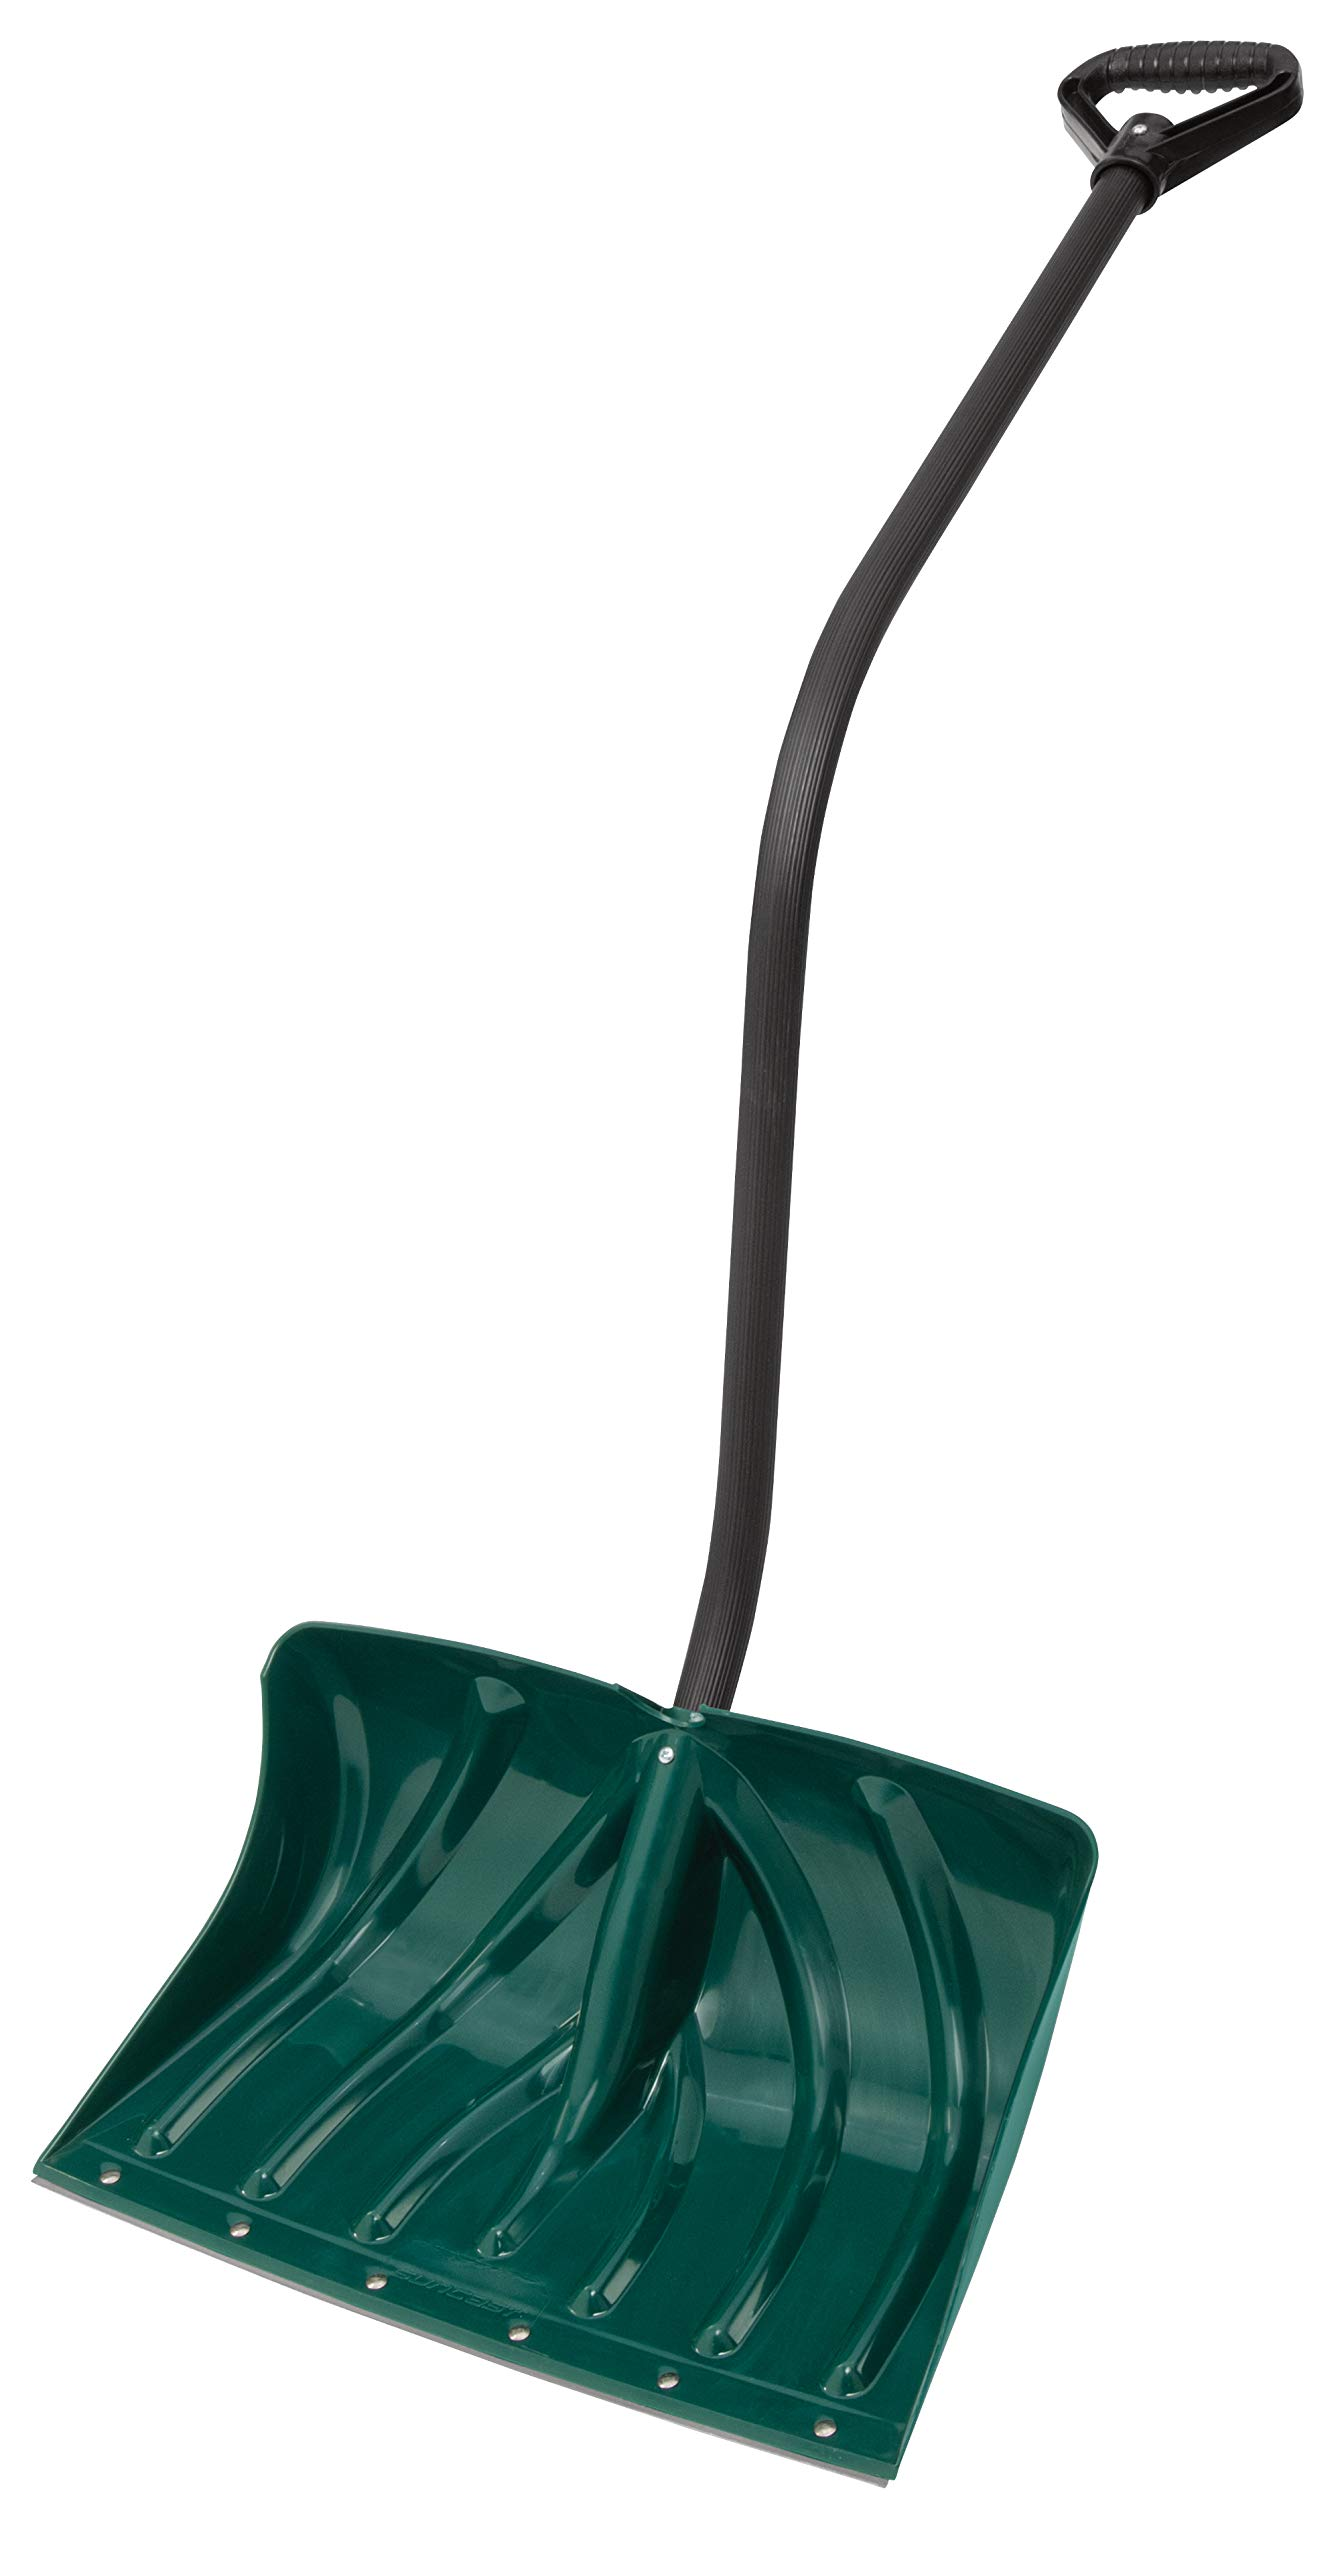 Suncast SC3250 18-Inch Snow Shovel/Pusher Combo with Ergonomic Shaped Handle And Wear Strip, Green by Suncast